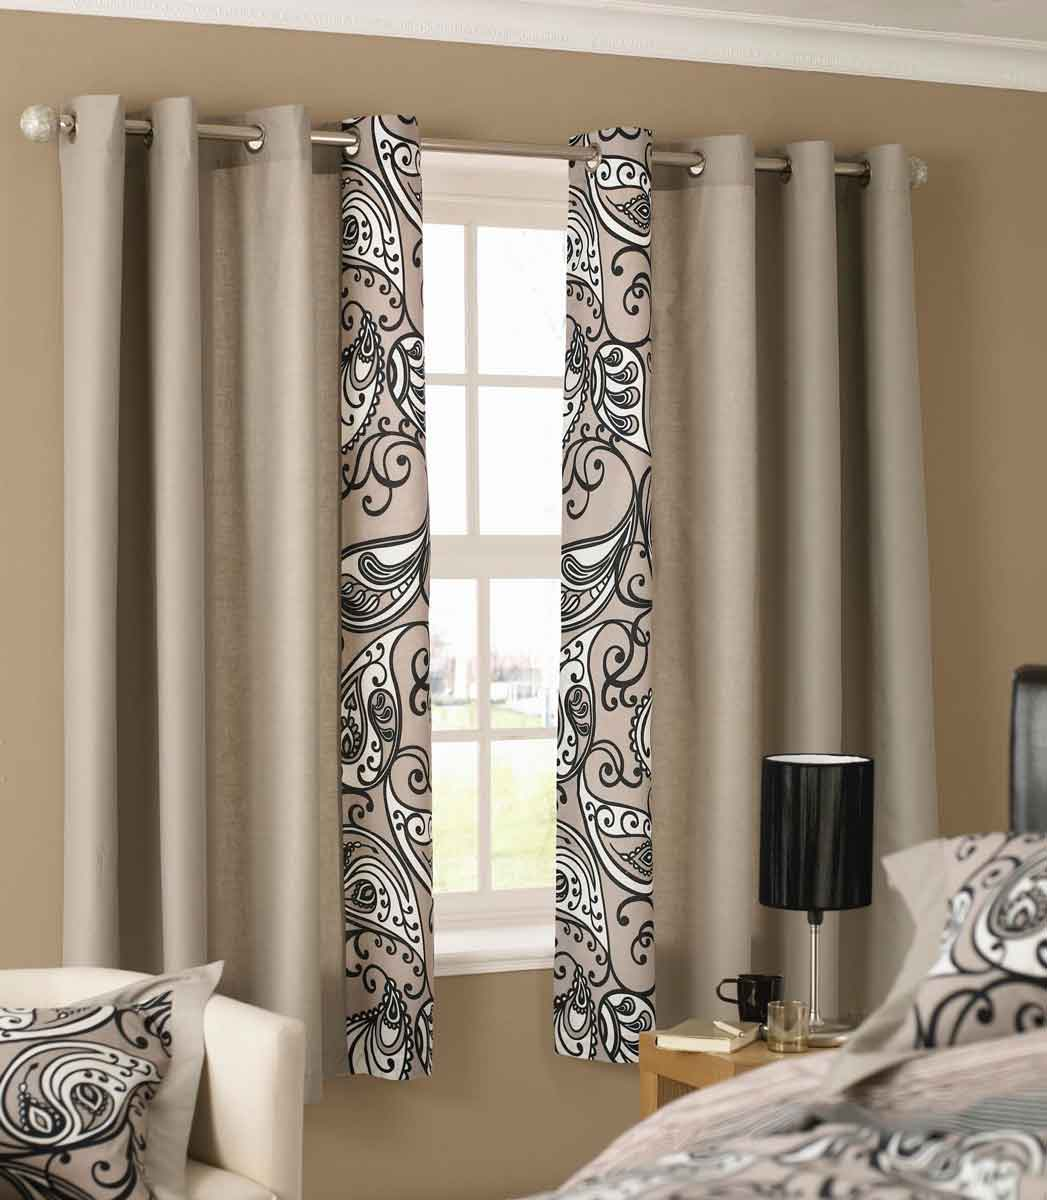 bedroom-curtain-ideas-691-bedroom-curtain-idea-1047-x-1200